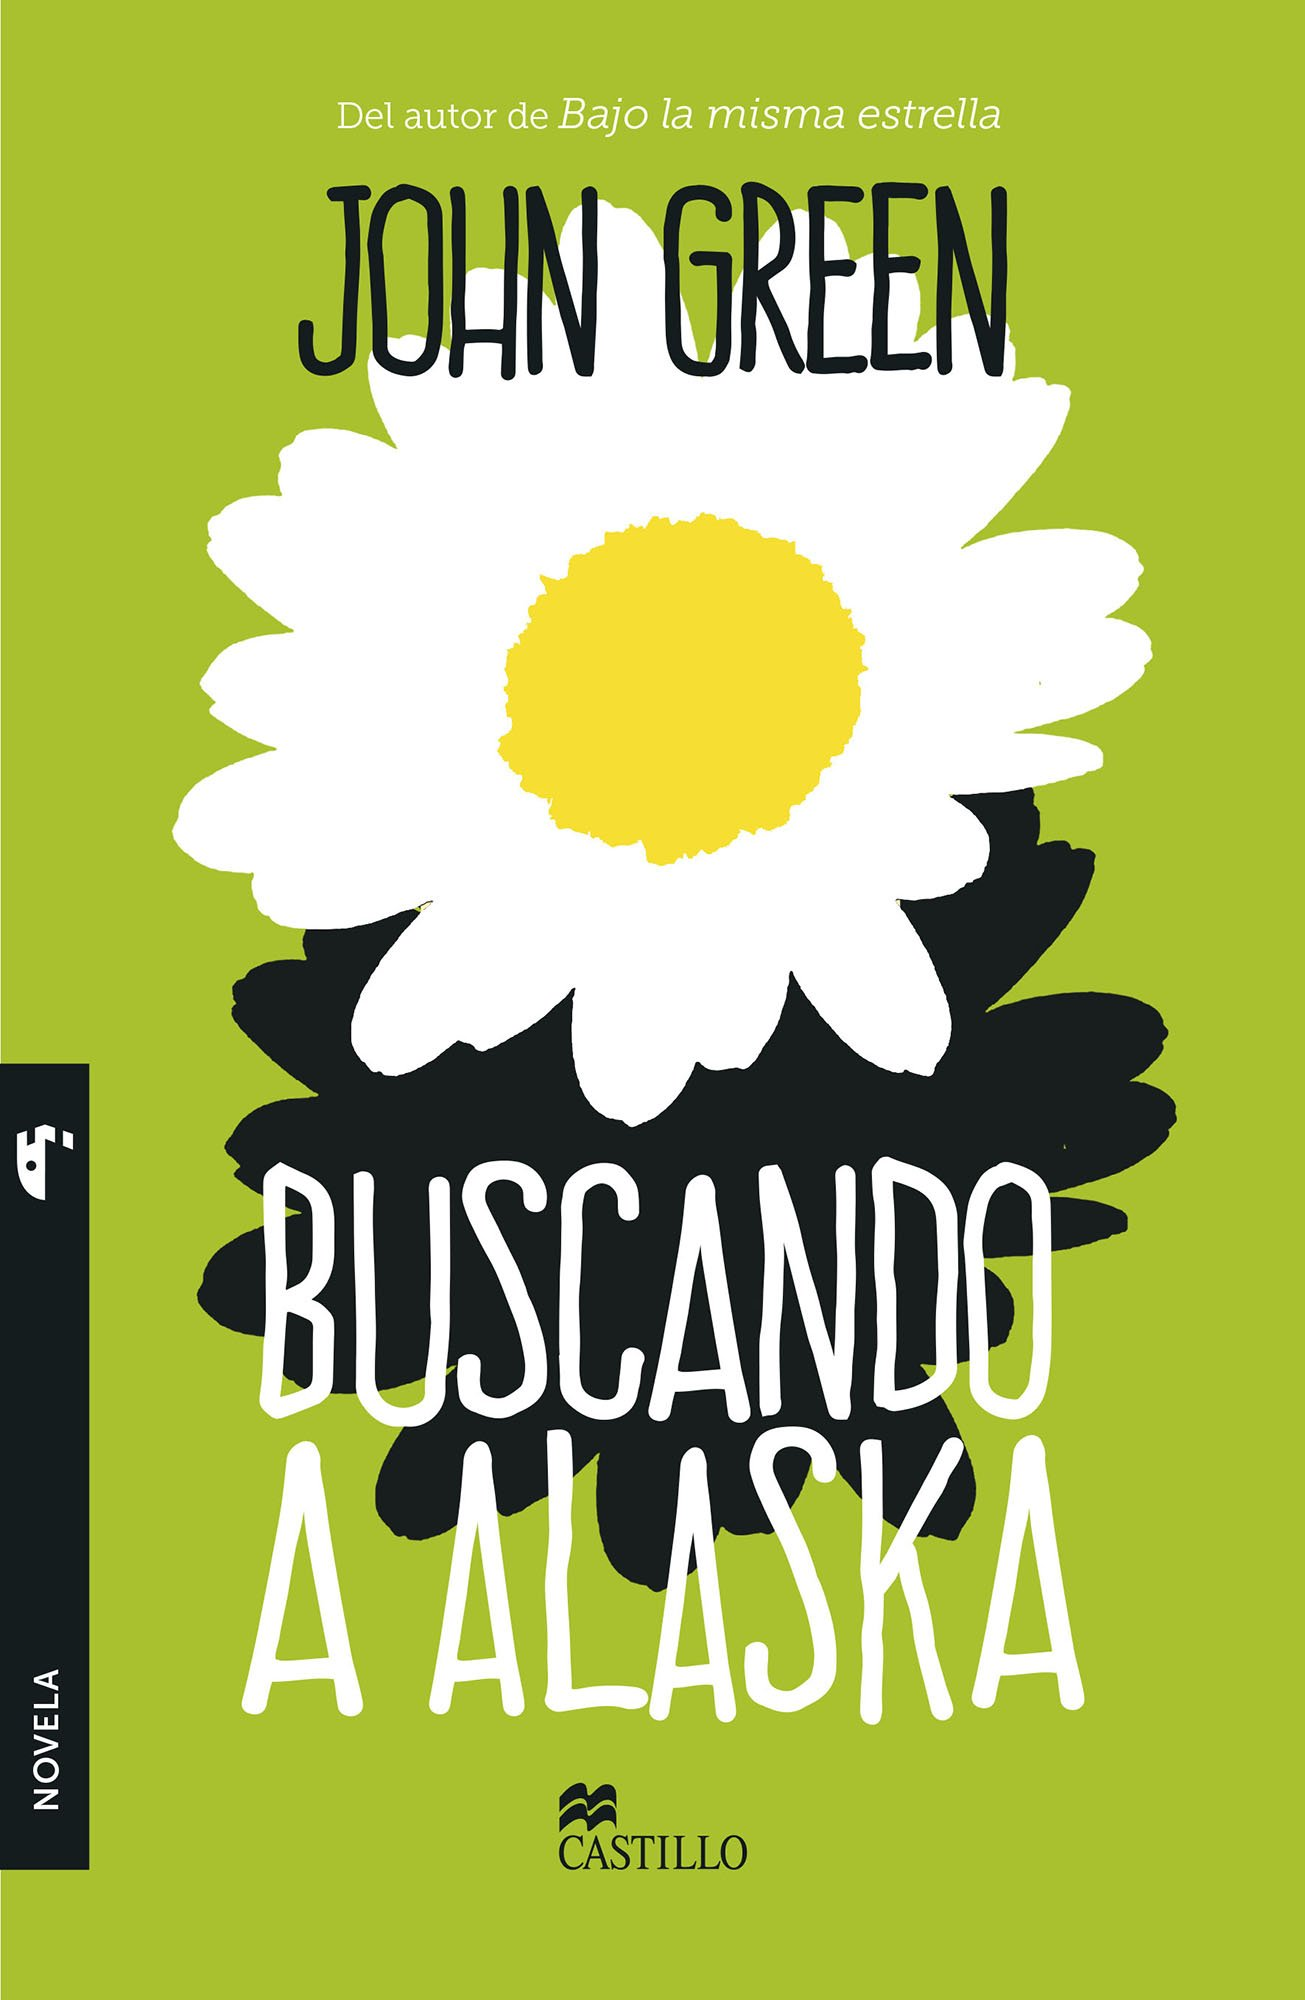 Buscando a Alaska: GREEN JOHN: 9786076210796: Amazon.com: Books